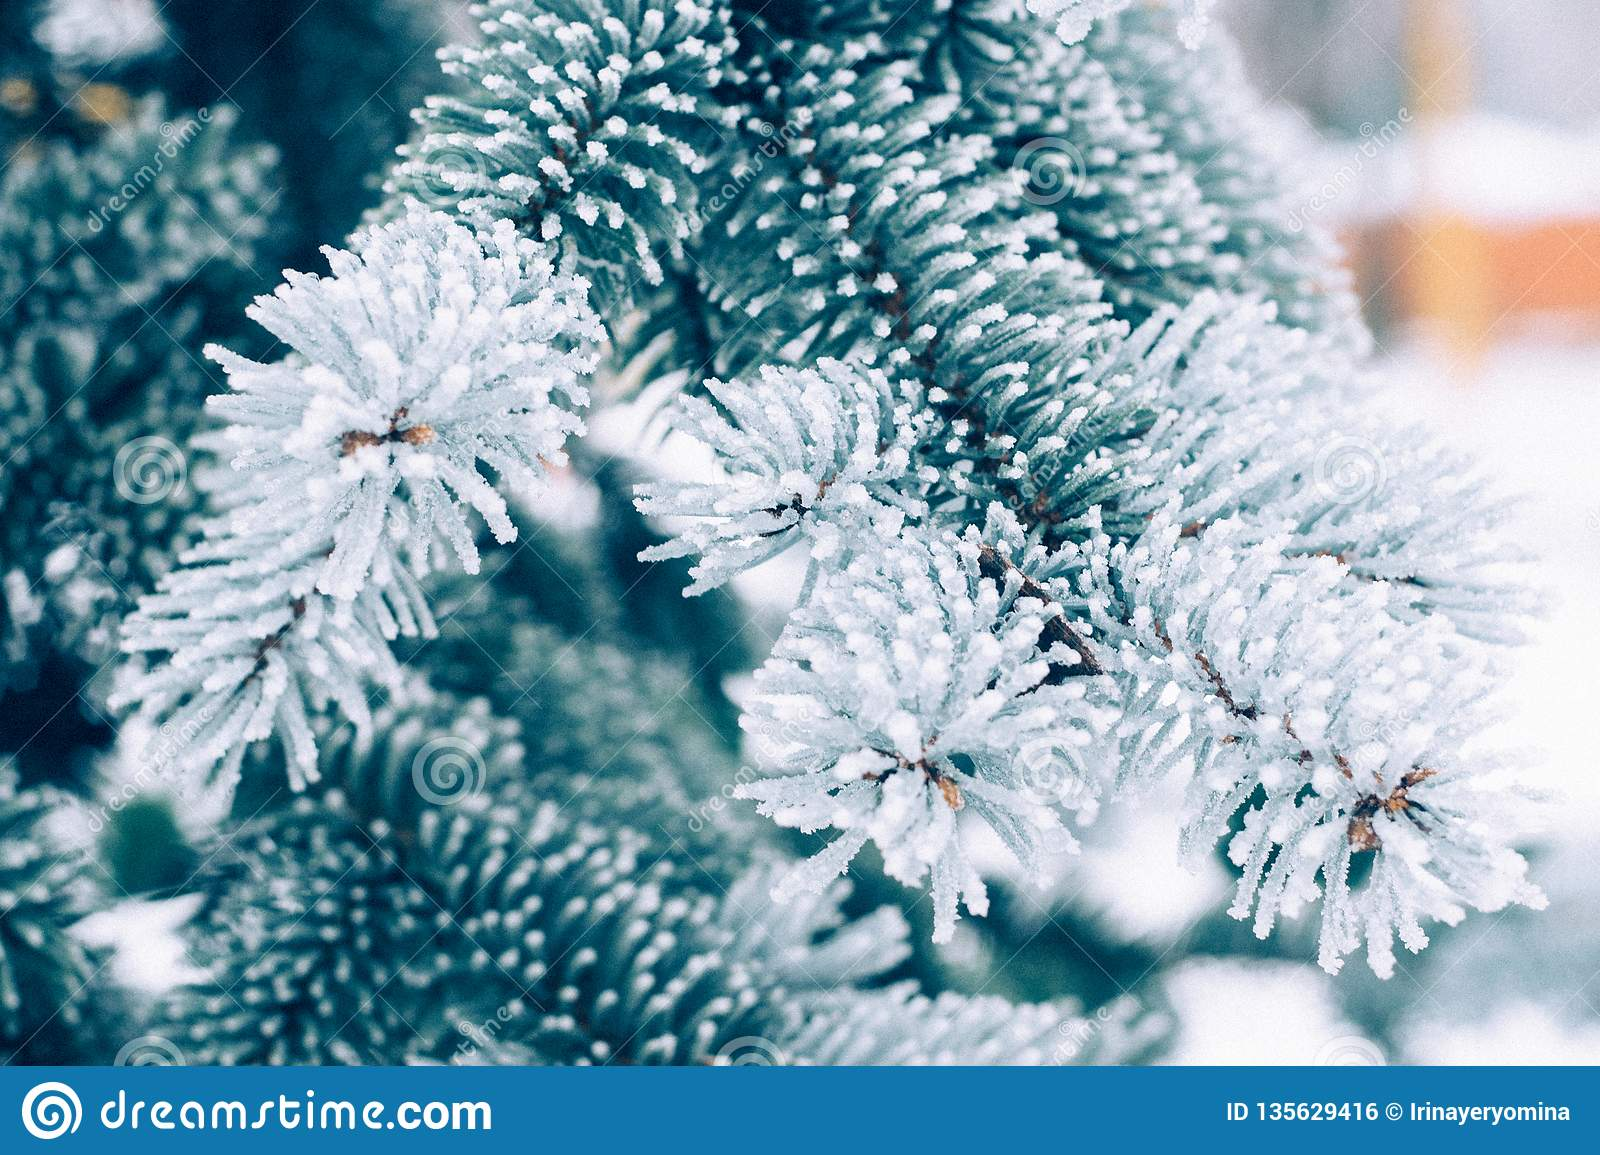 Winter frost Christmas evergreen tree background. Ice covered blue spruce branch close up. Frosen branch of fir tree covered with